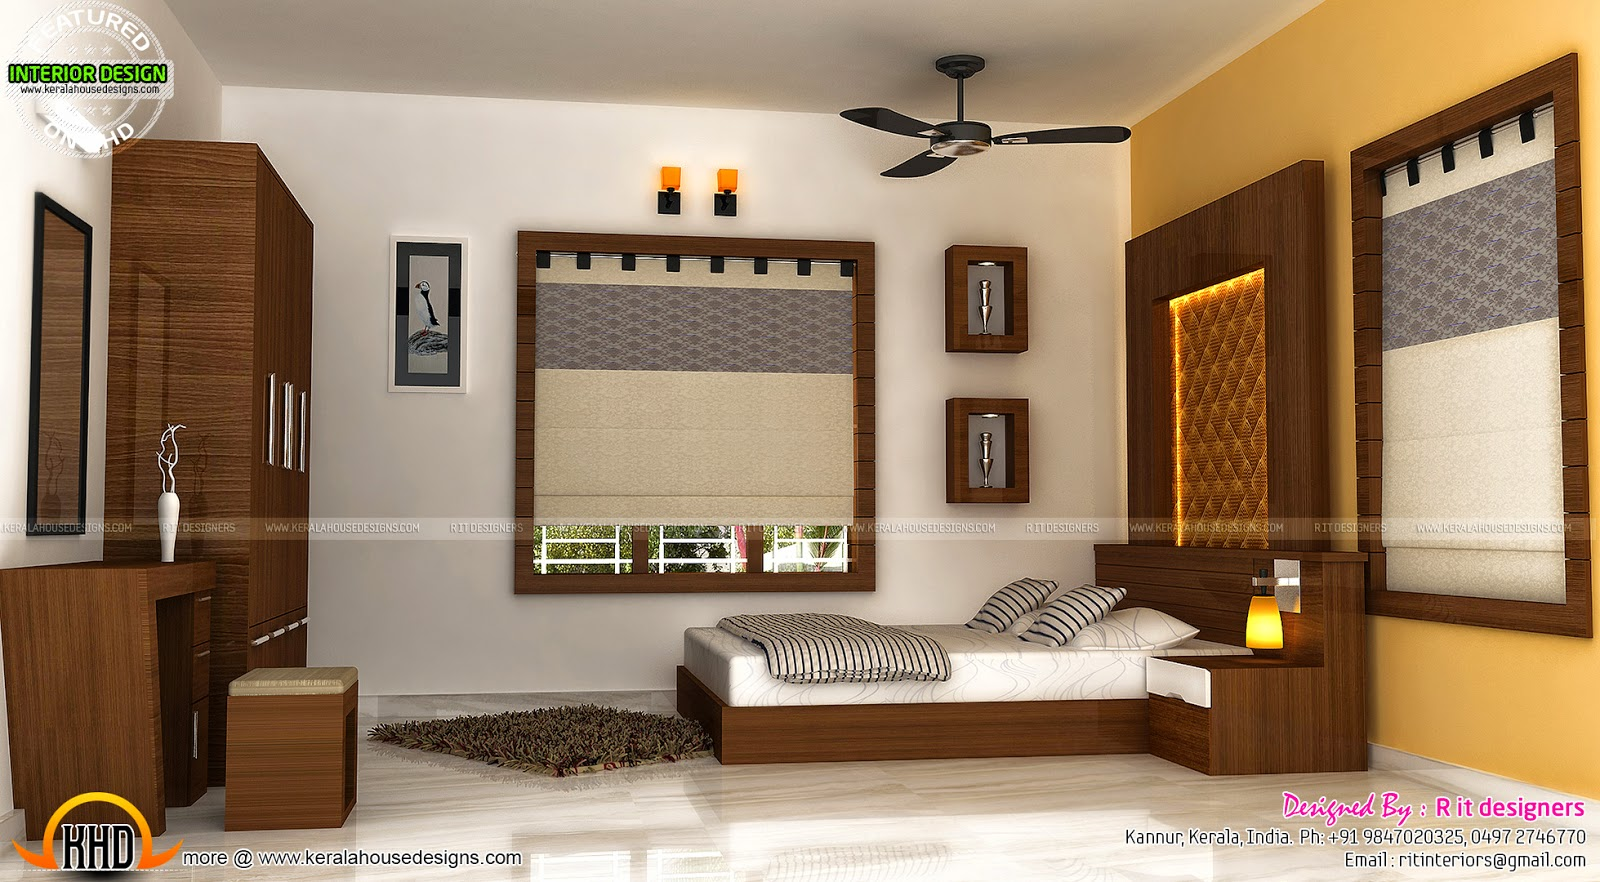 Staircase bedroom dining interiors kerala home design for House design interior decorating